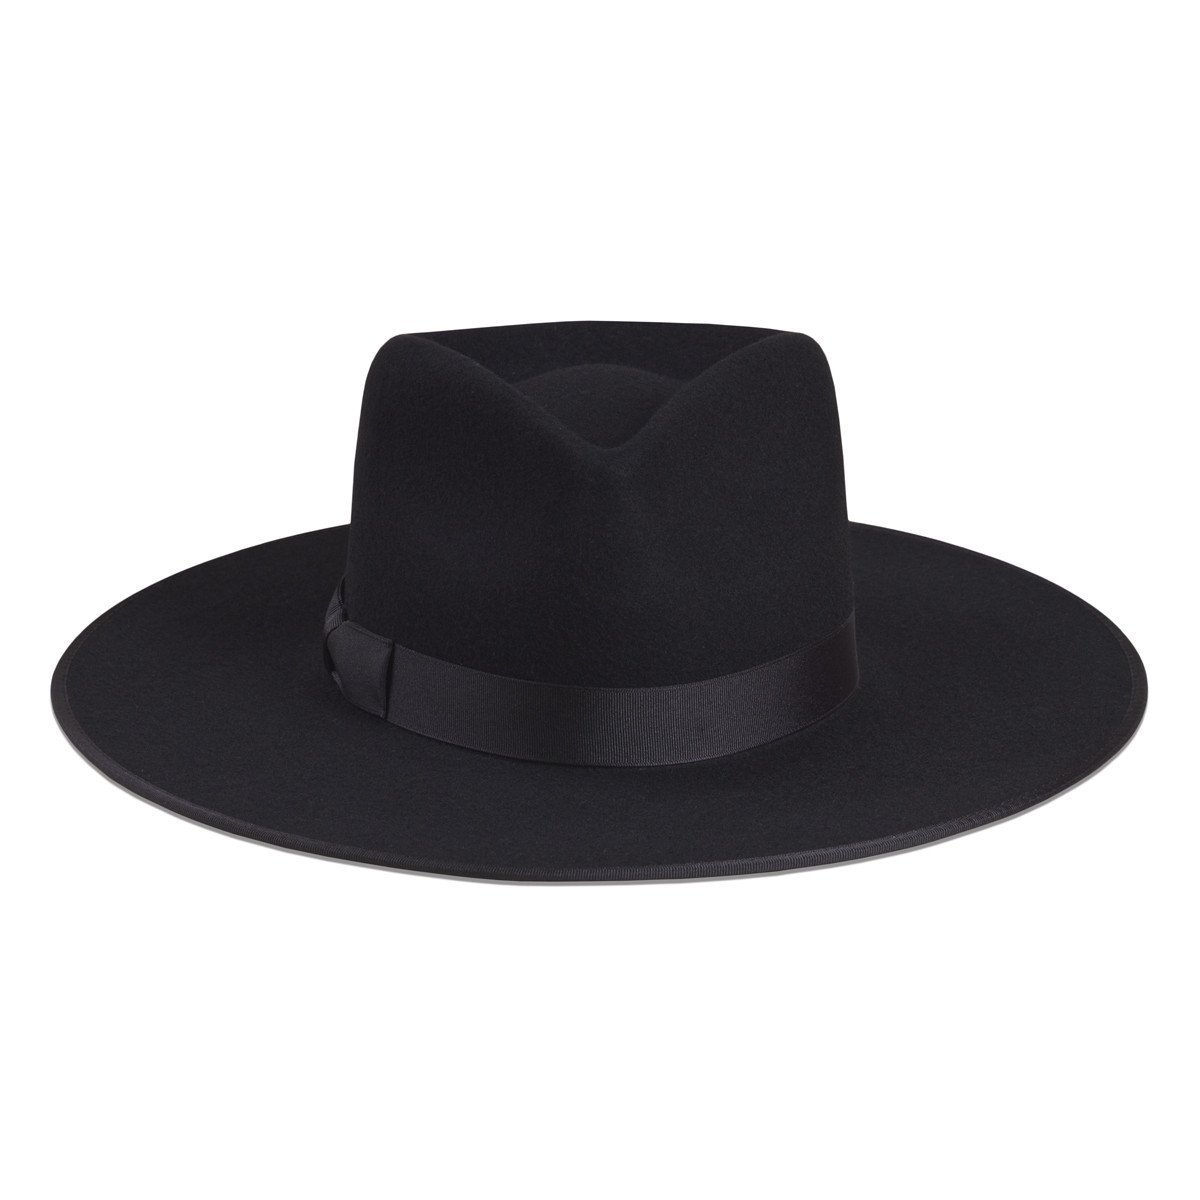 Load image into Gallery viewer, Noir Rancher Hat for Women by Lack of Color